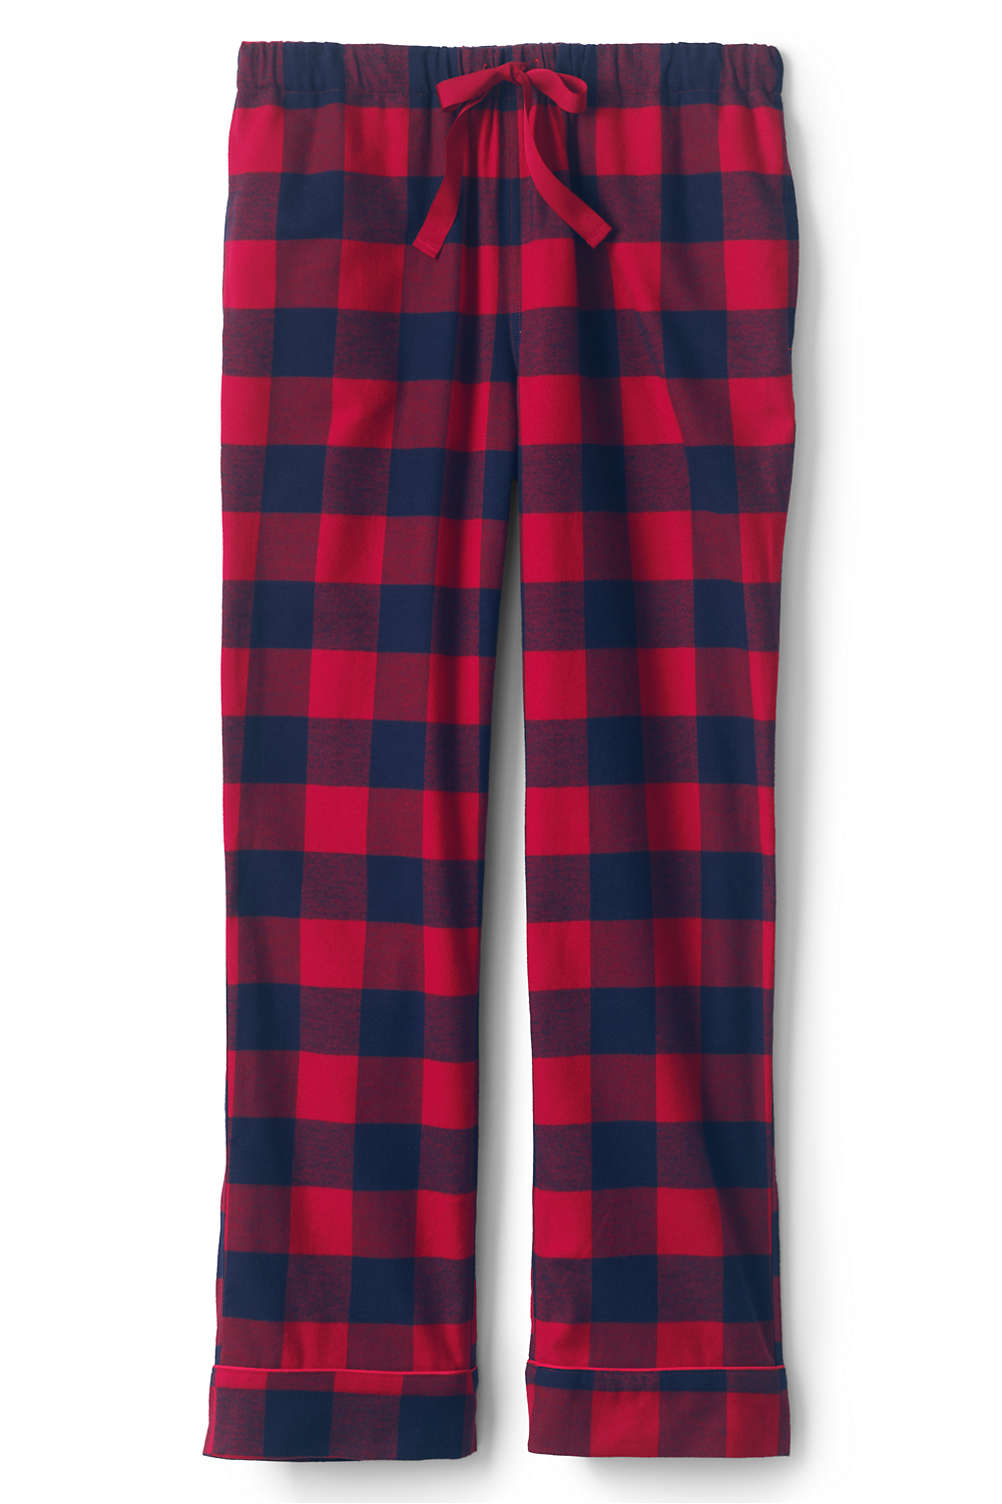 9b3cd2e5289 Women s Plus Size Flannel Sleep Pant from Lands  End